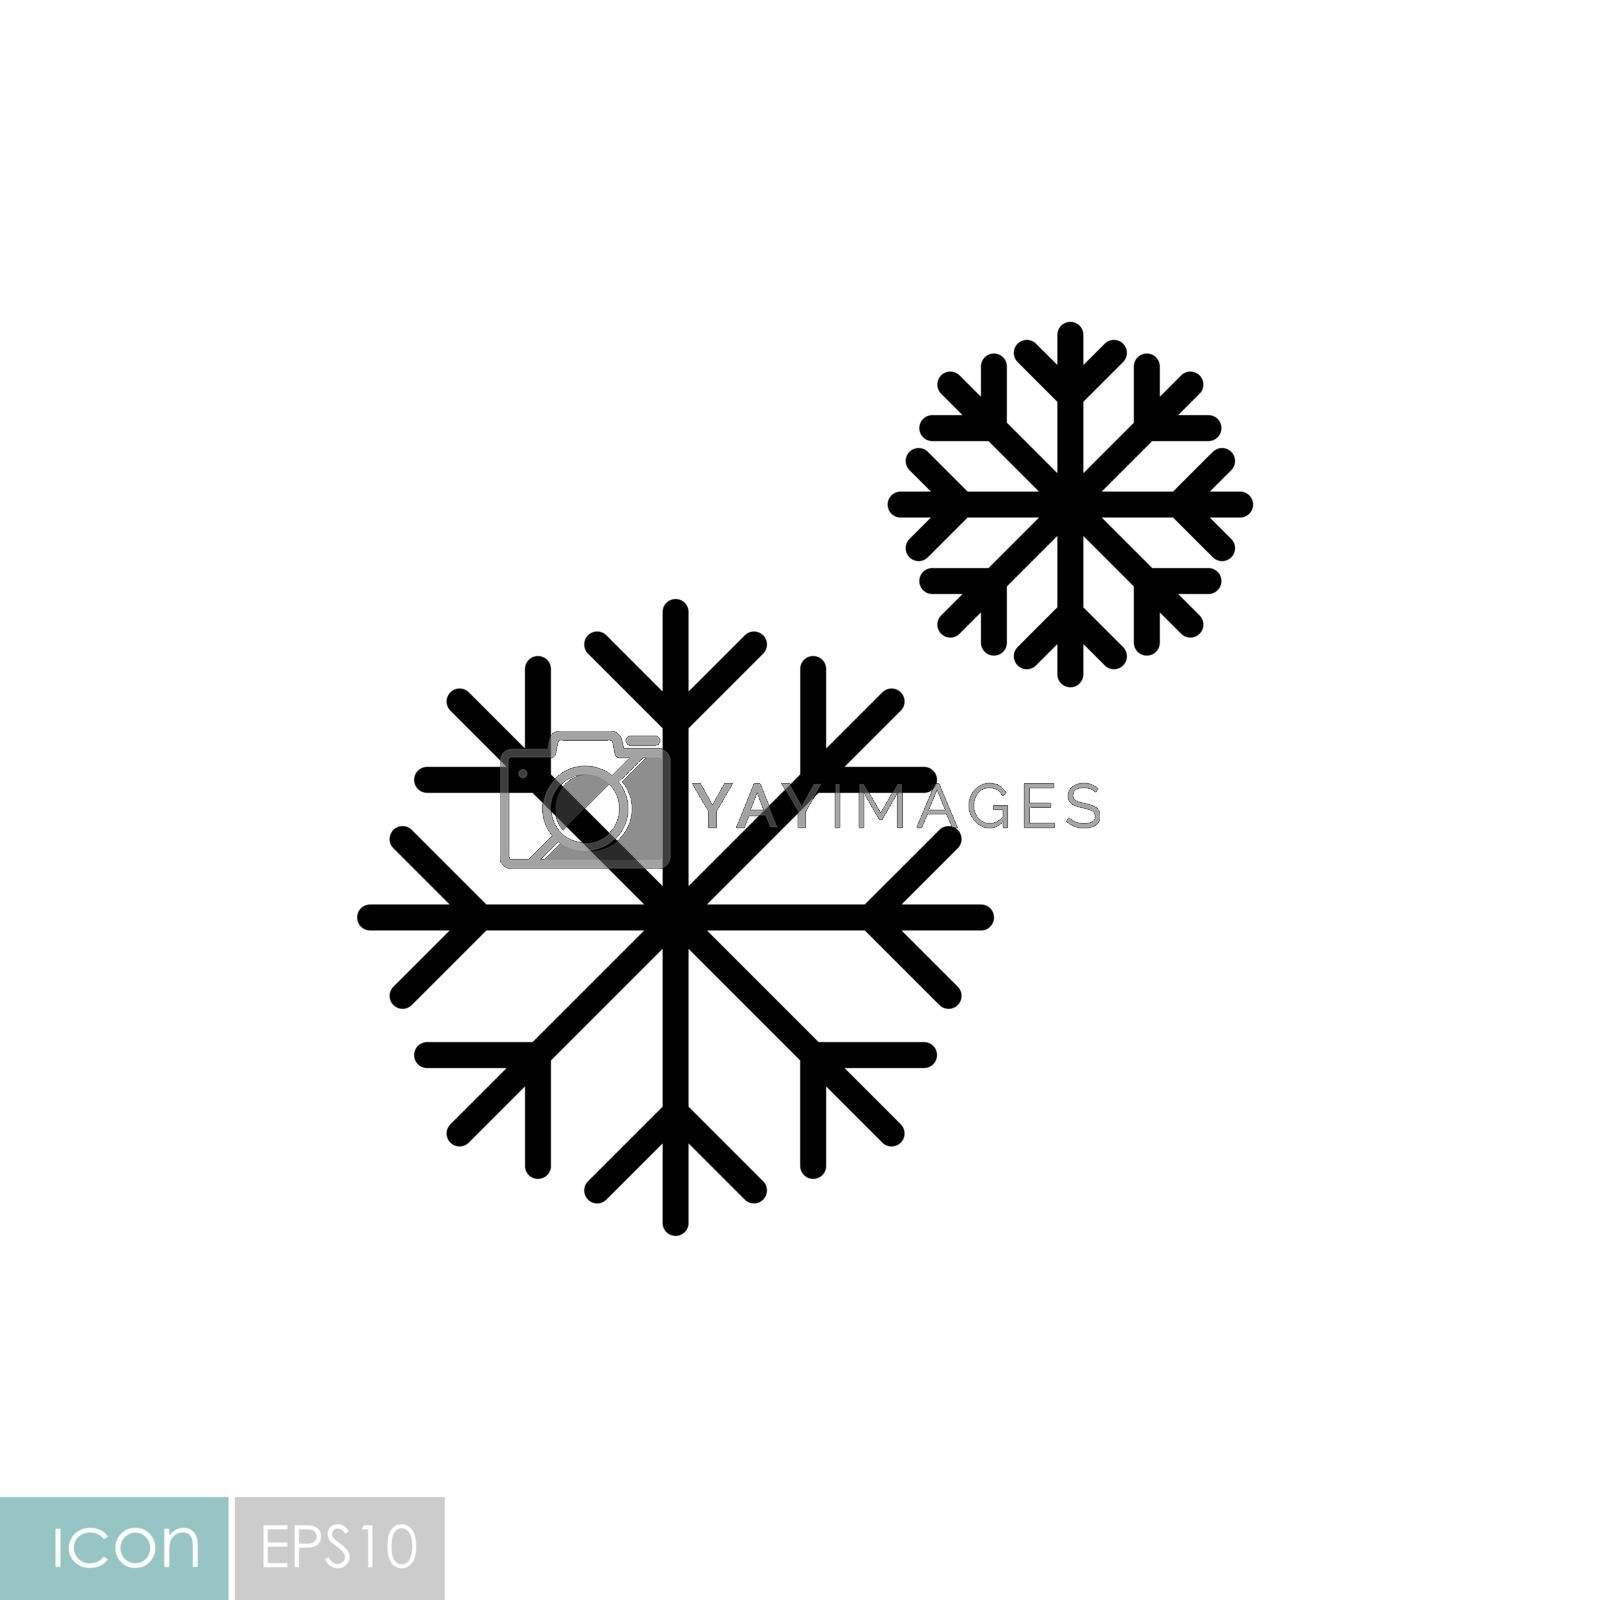 Snowflakes vector icon. Winter sign. Graph symbol for travel and tourism web site and apps design, logo, app, UI